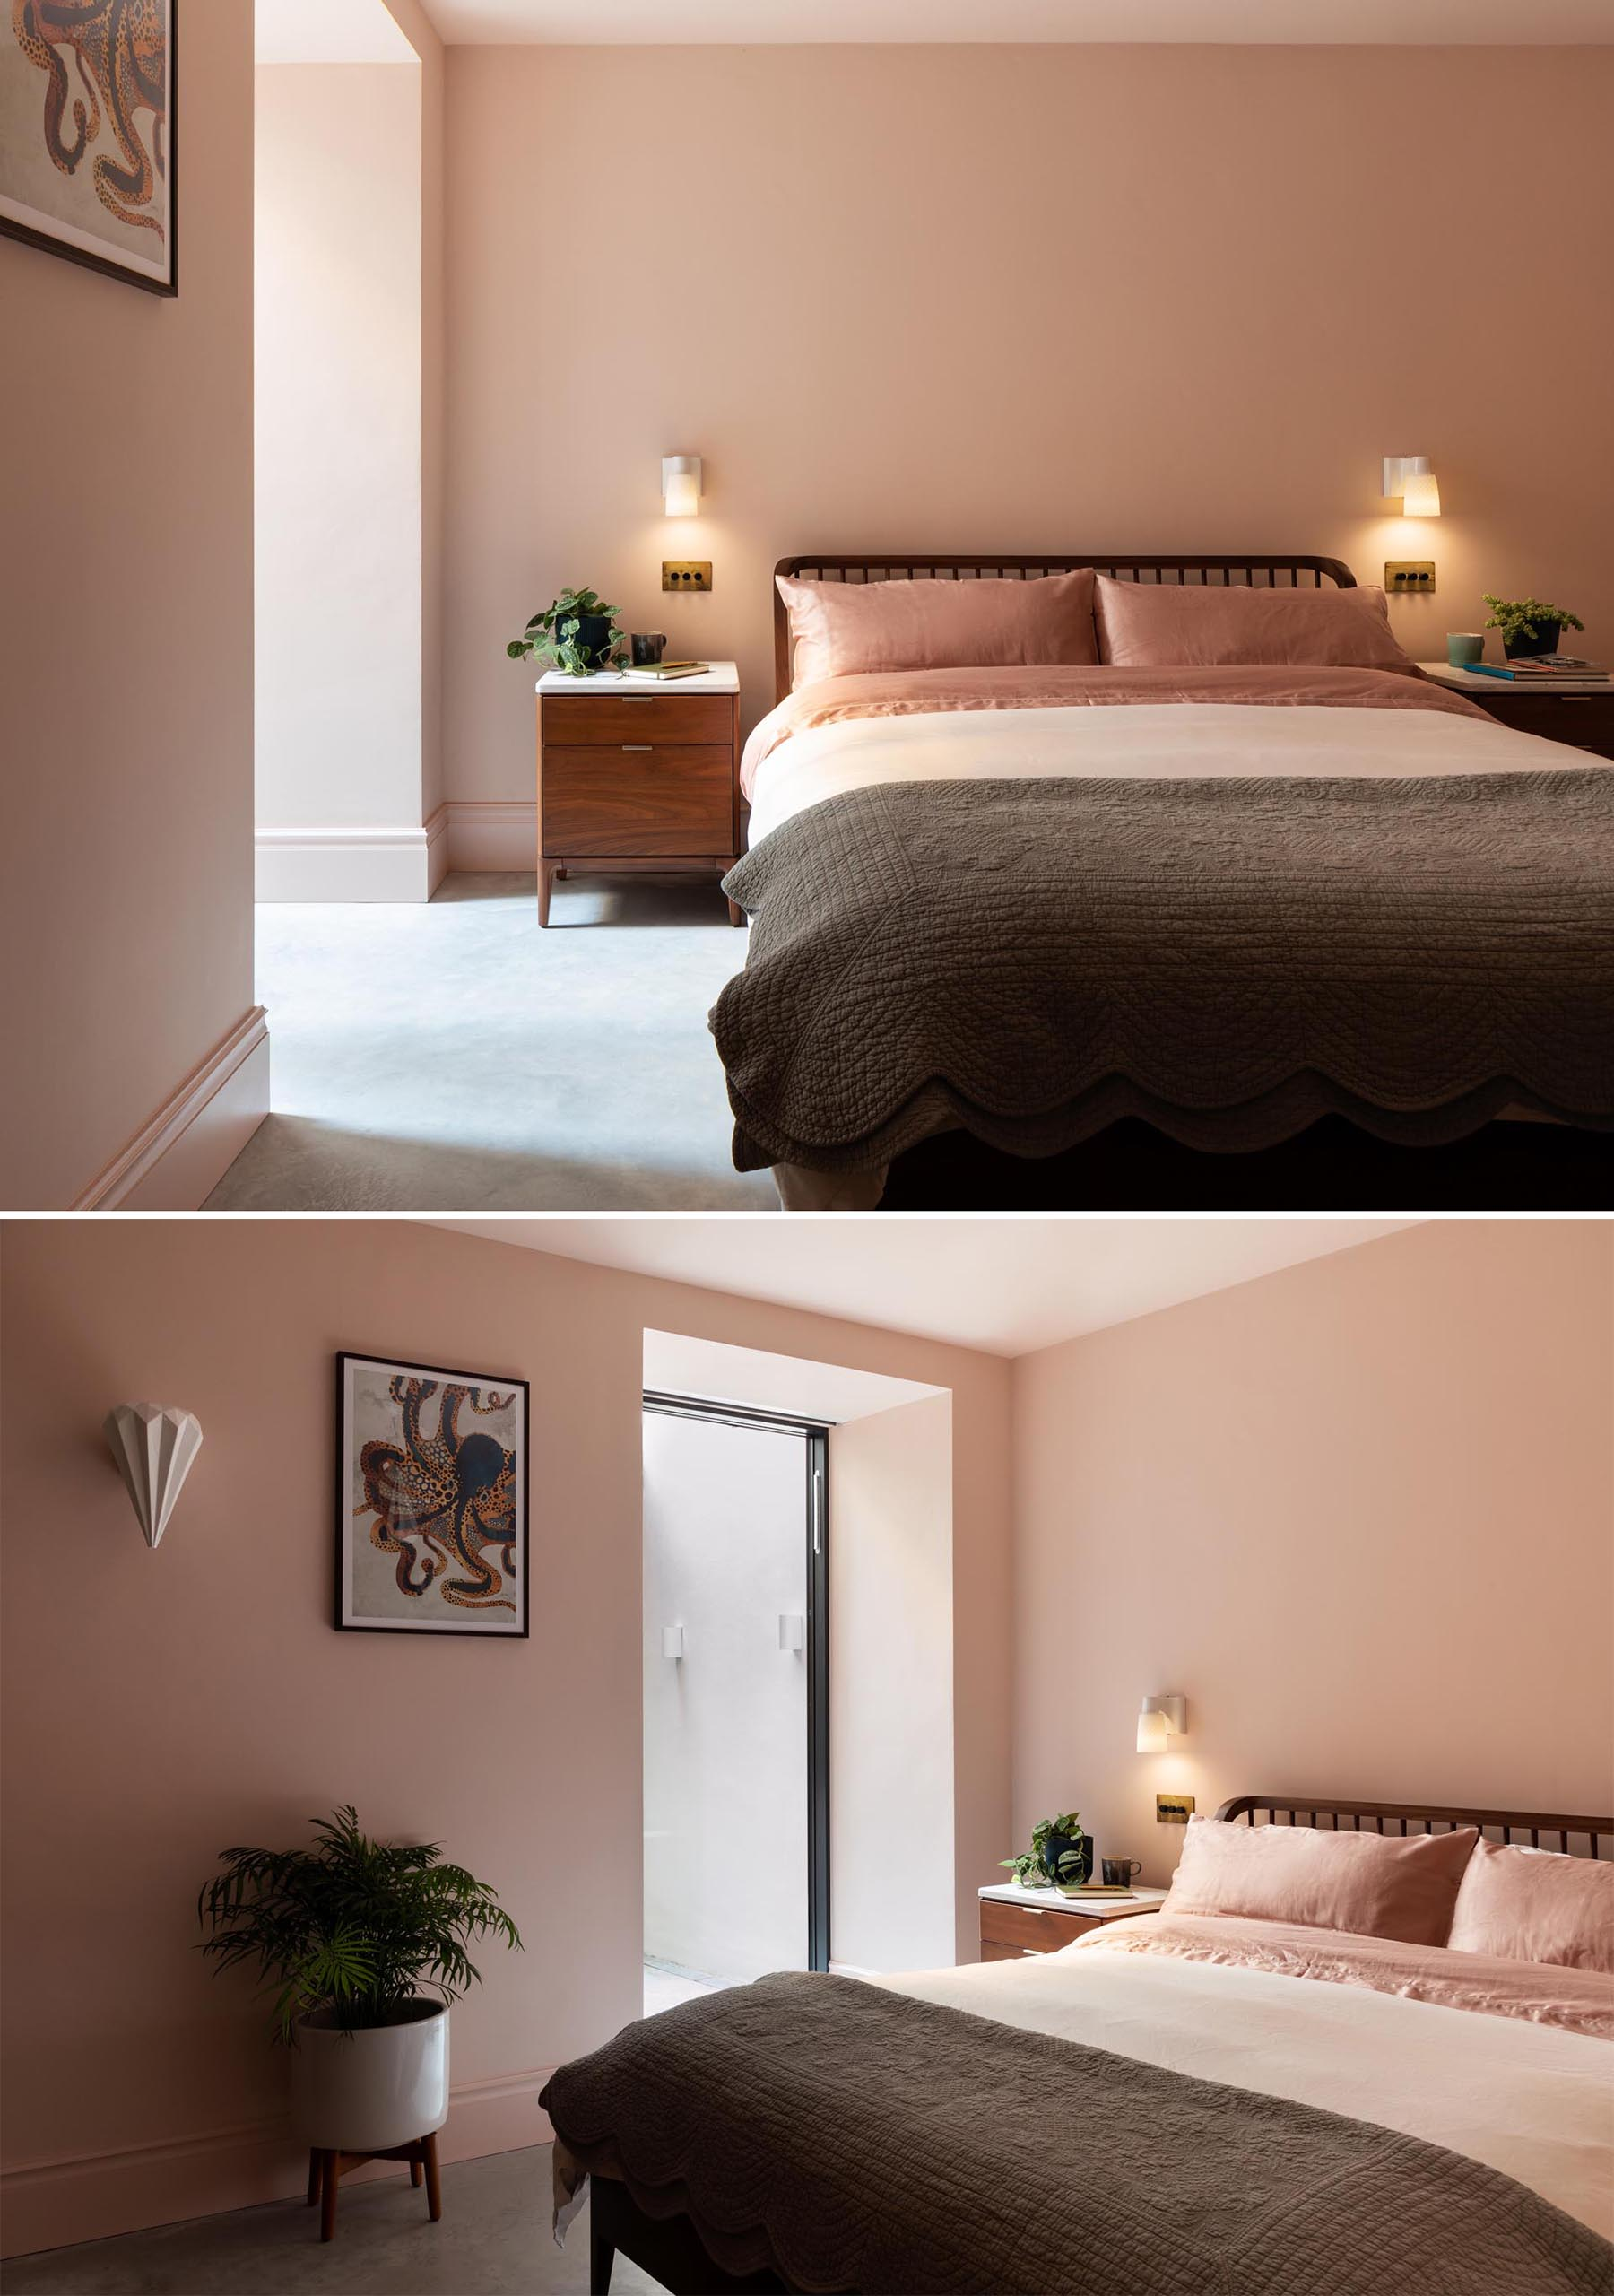 In this modern bedroom, blush pink walls and bedding creates a calm and relaxed environment.